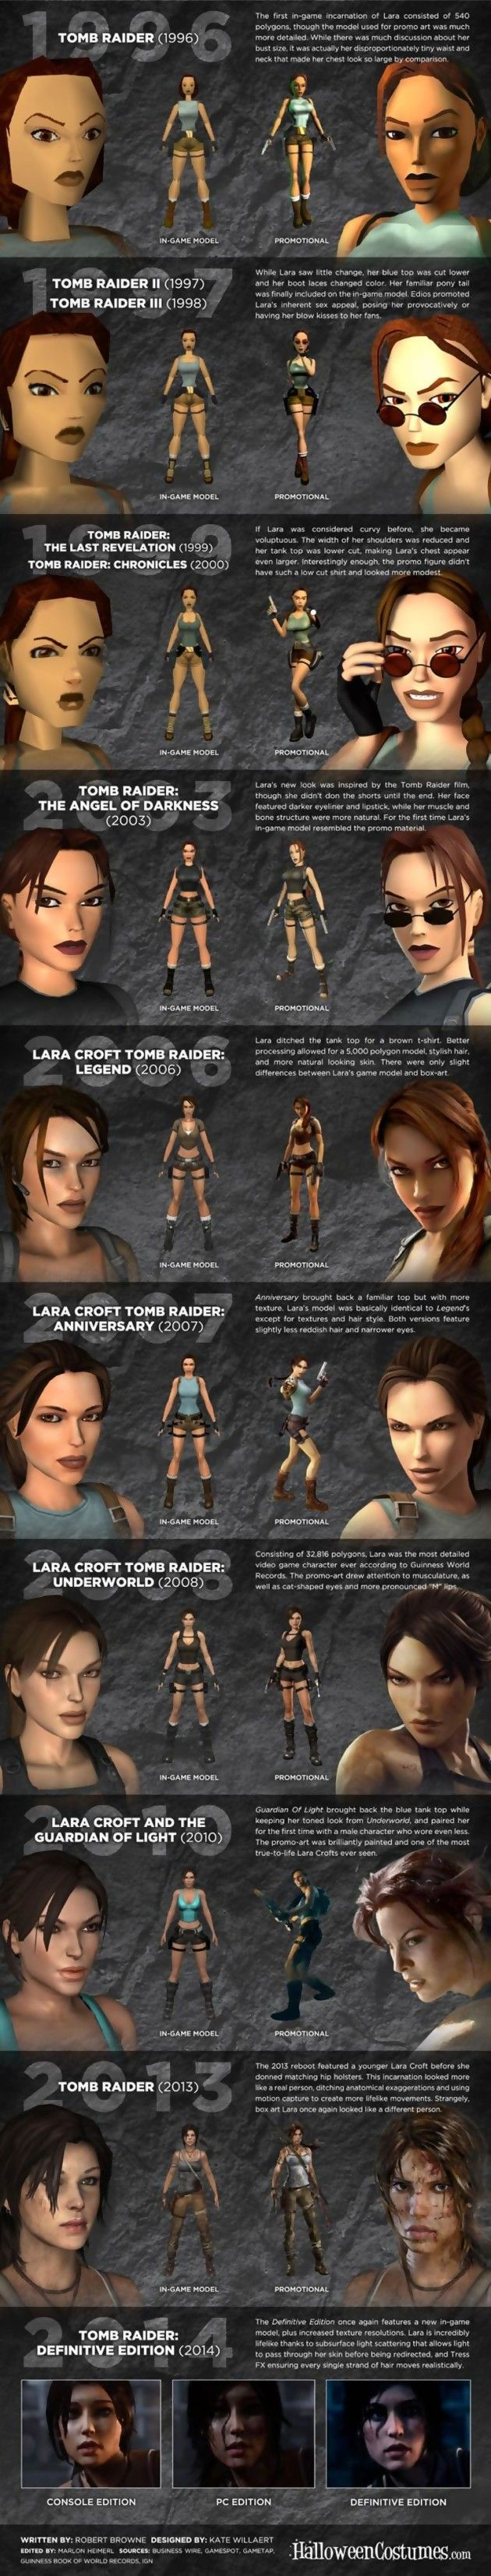 How cool! The evolution of Lara Croft in video games. my BF is seriously in love with Lara Croft! His current game obsession.